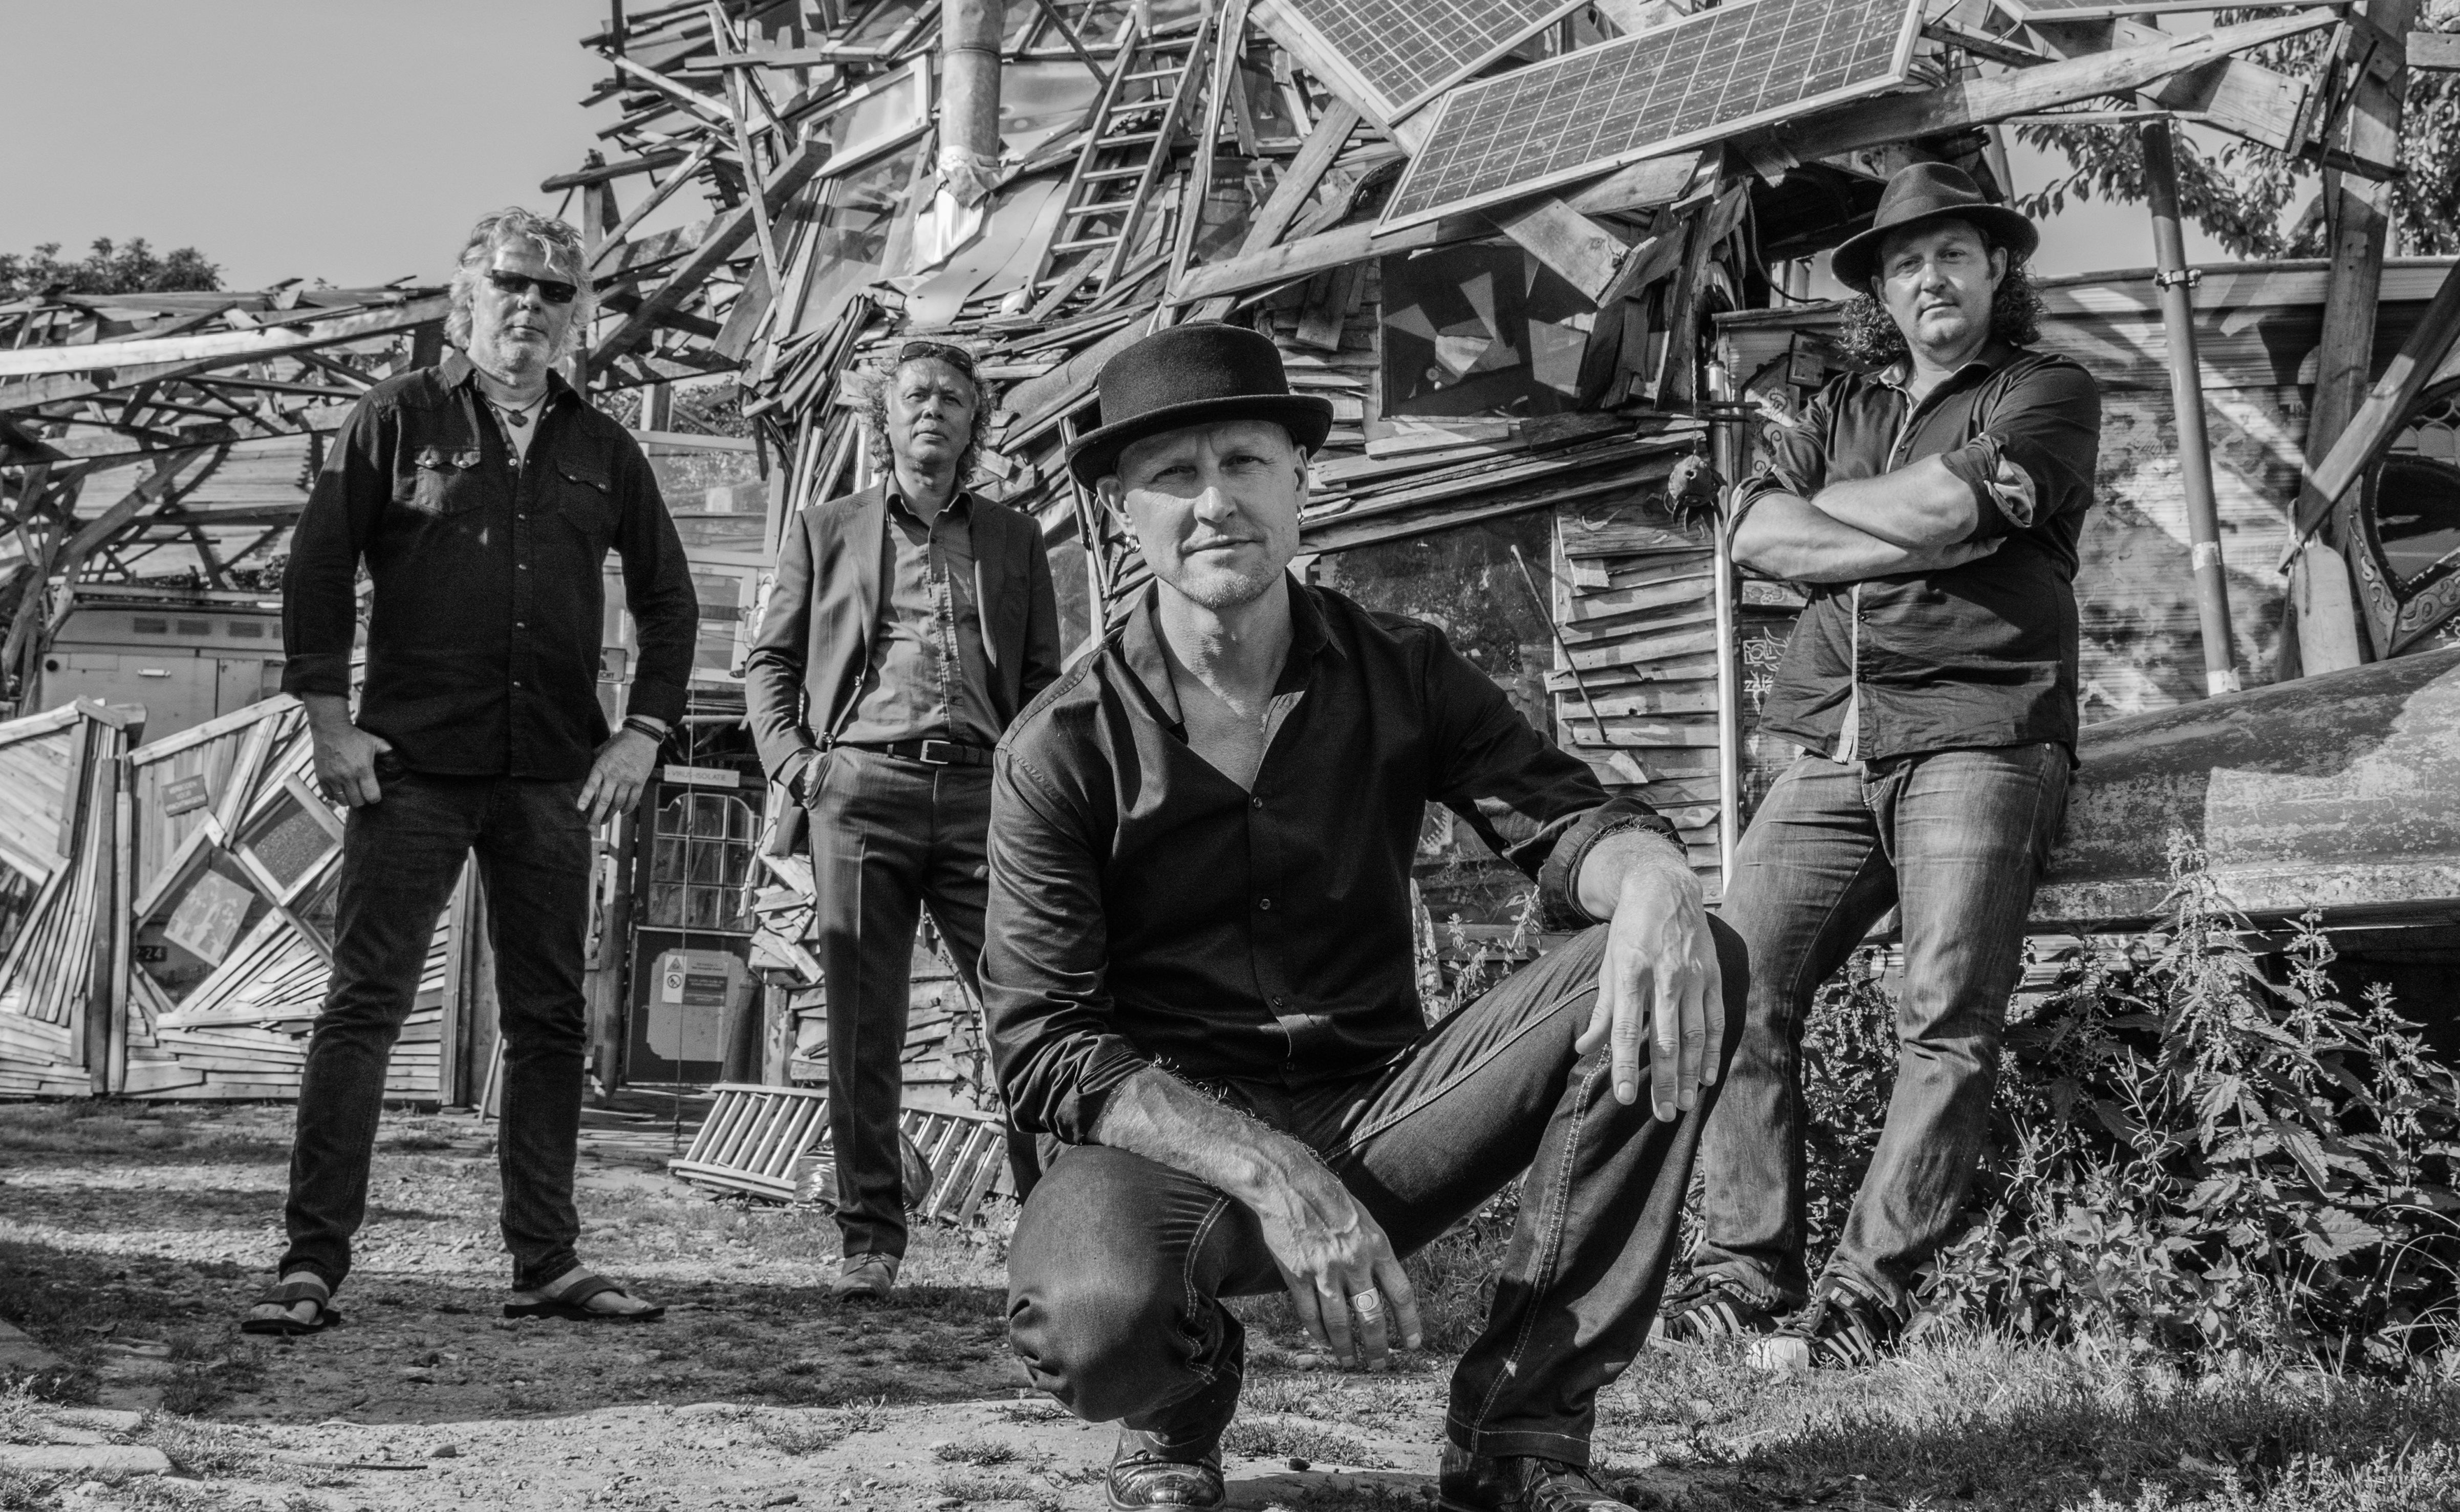 King of the World Live in Dormagen am 21.04 im Pink Panther